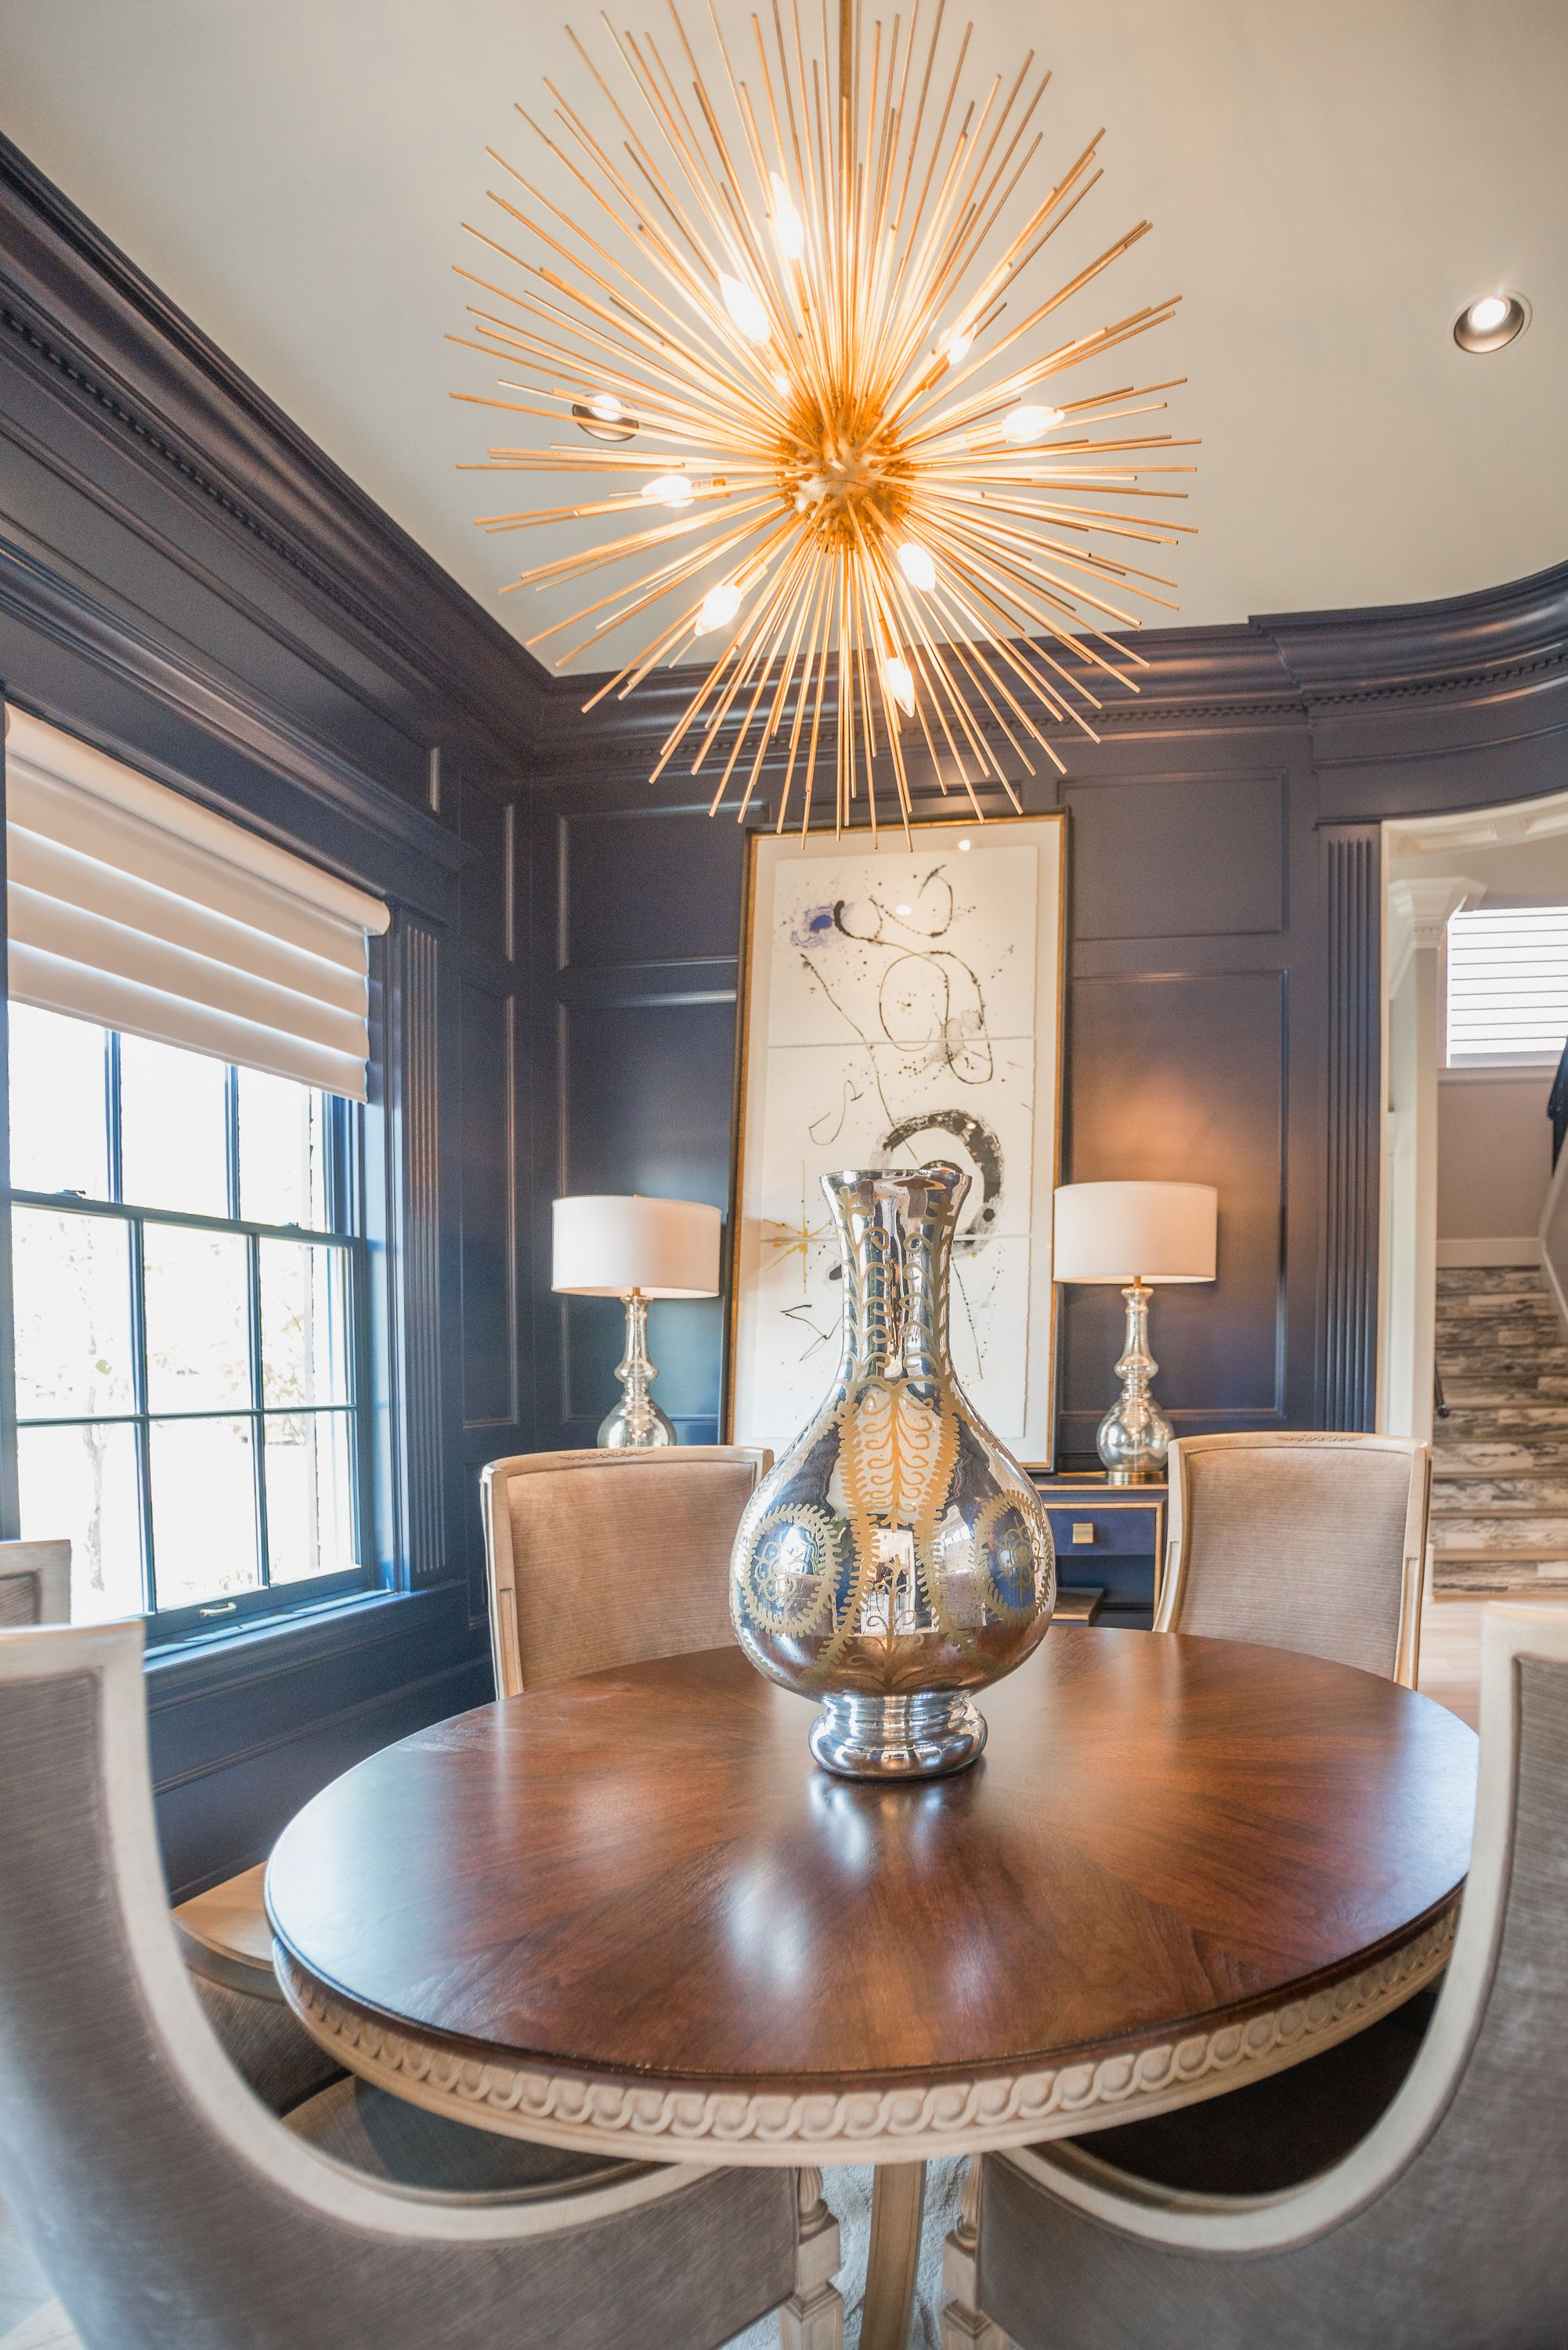 Best Kitchen Gallery: 2016 Parade Home Lubbock Texas Interior Design By Kelly of Grace Home Design  on rachelxblog.com